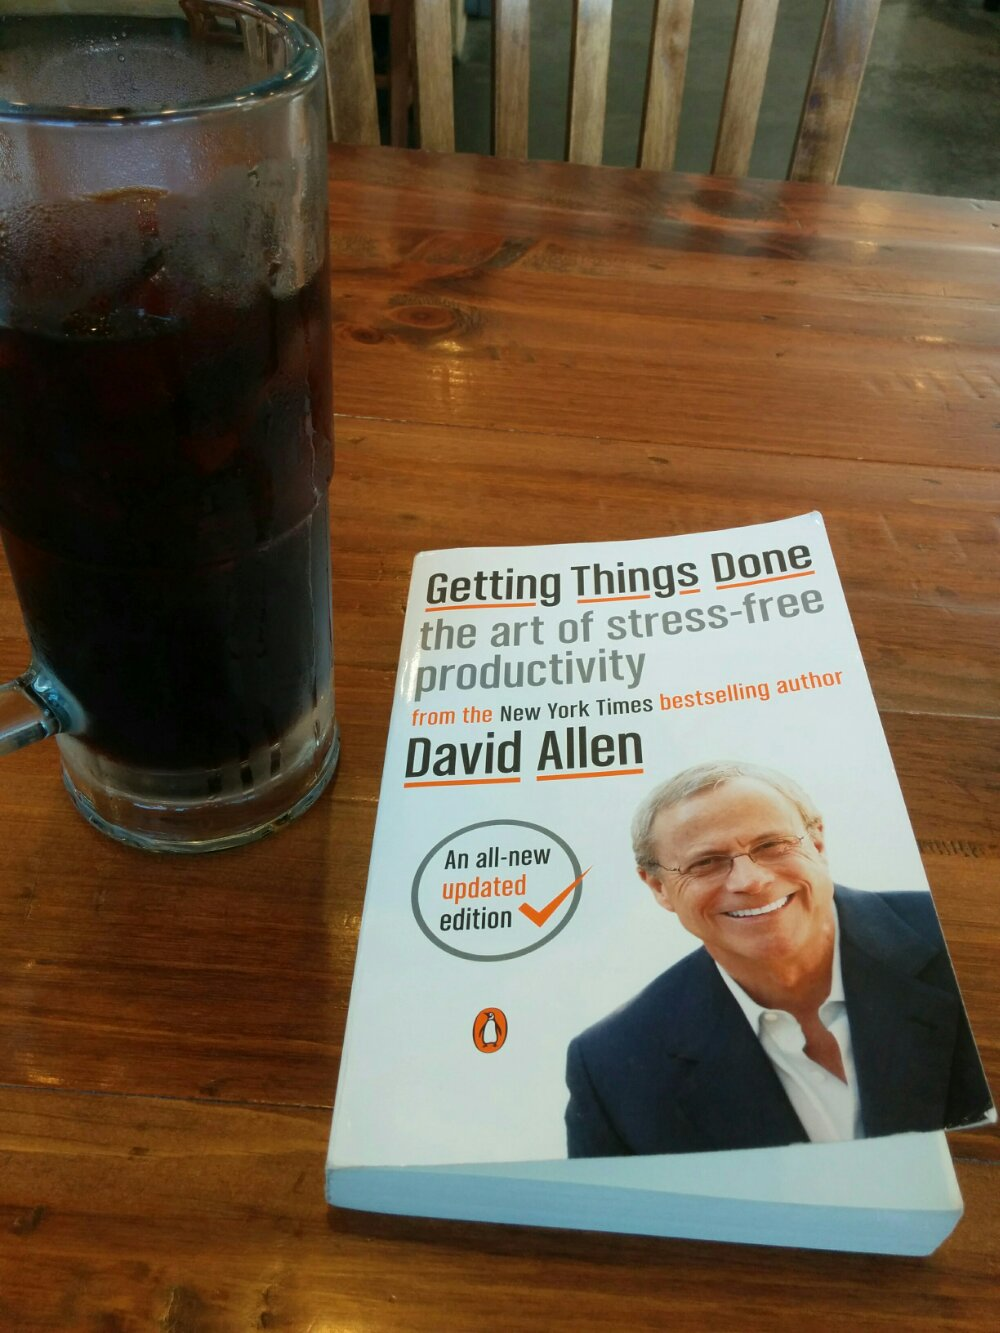 Cold Brew Coffee and GTD